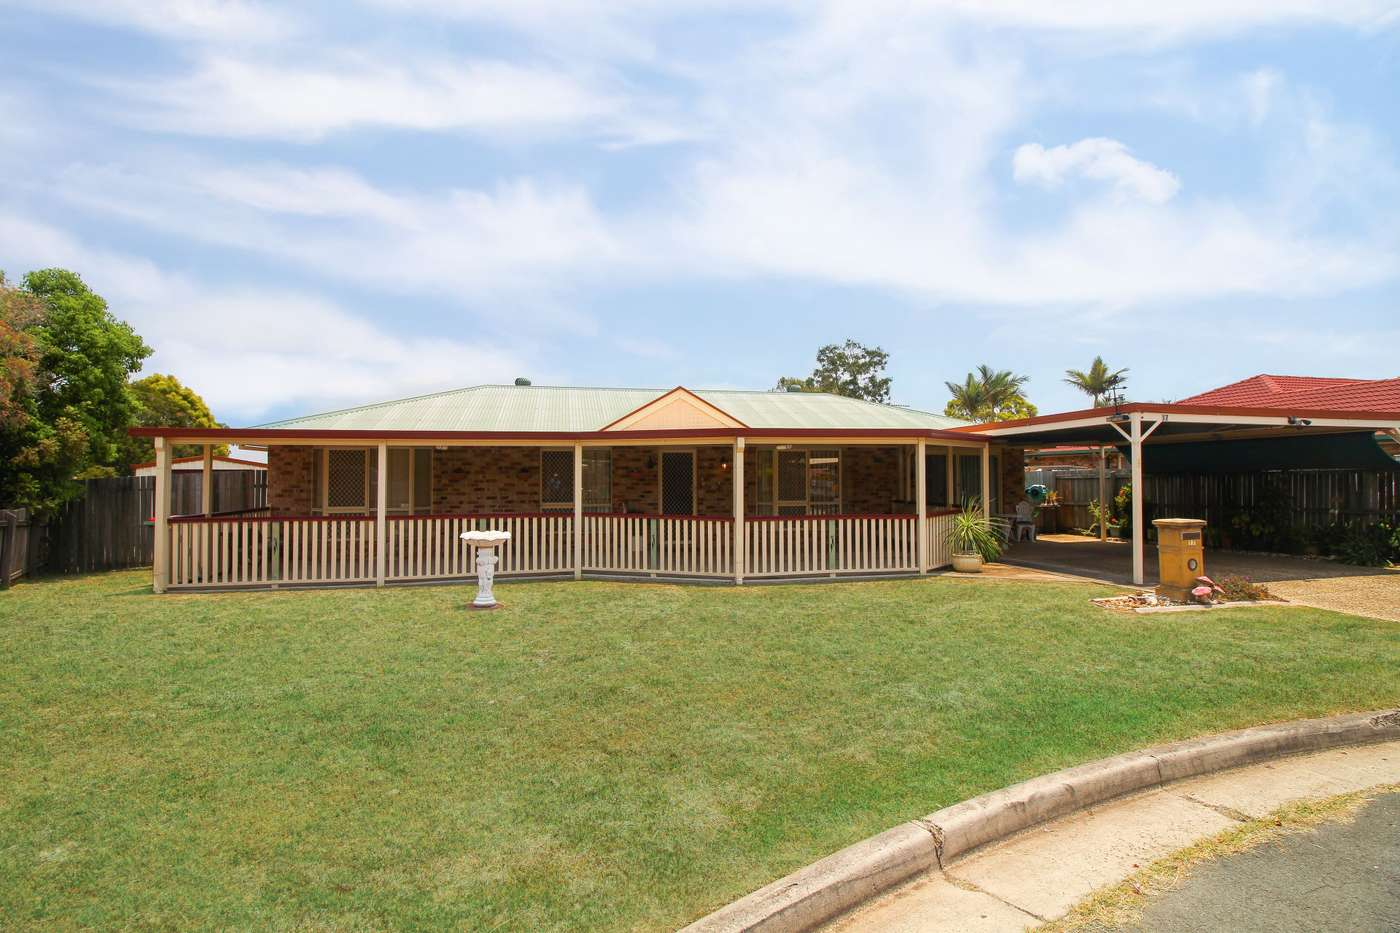 Main view of Homely house listing, 17 Deidre Ann Street, Raceview, QLD 4305